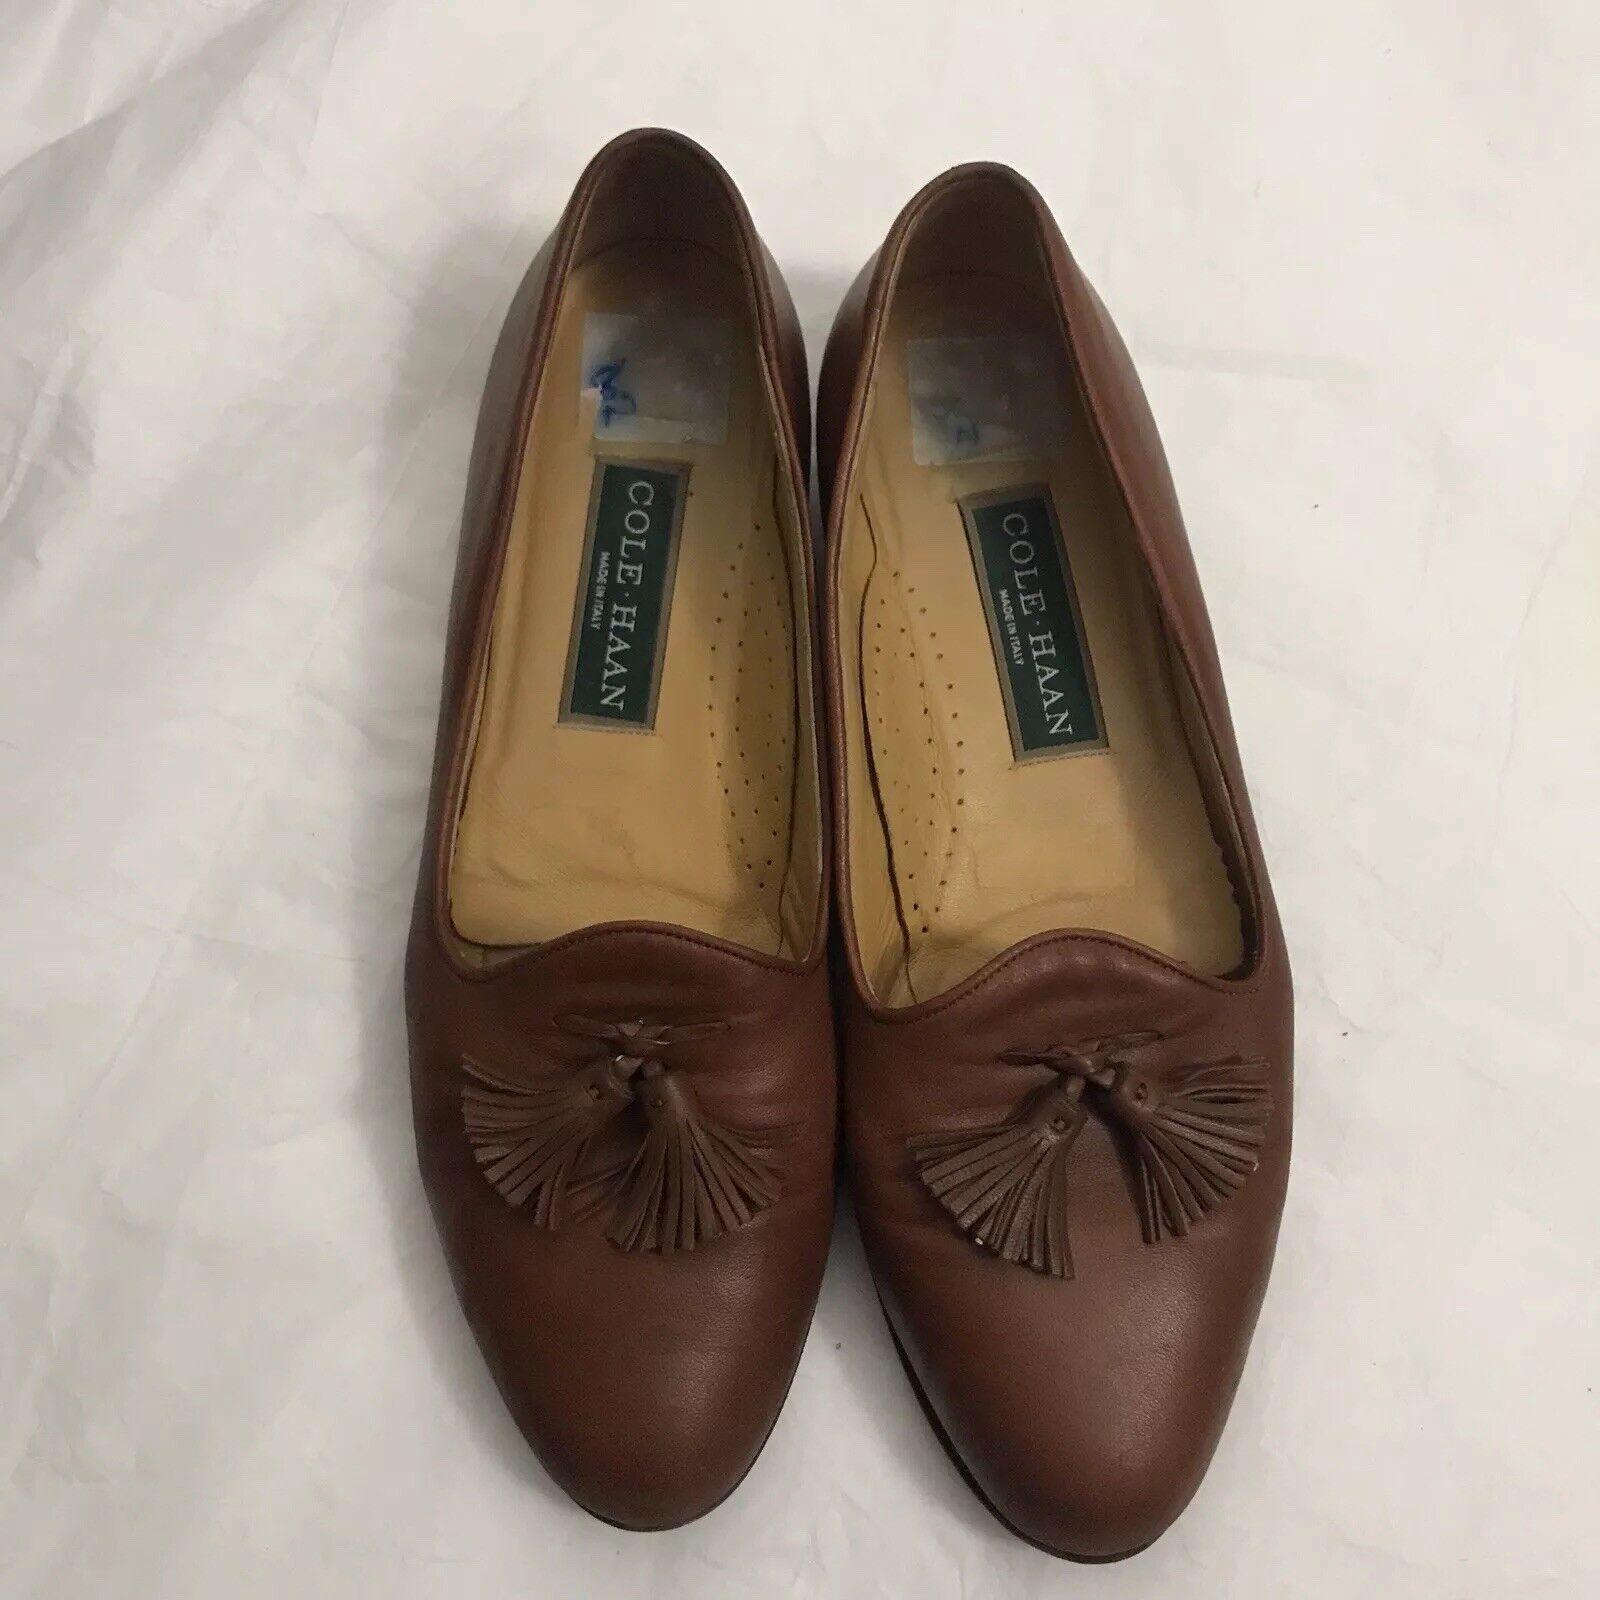 8ec97a20975 Cole Haan Italy Brown Tassel Loafer Shoe Womens Size 8 AA Narrow Worn  Leather for sale online